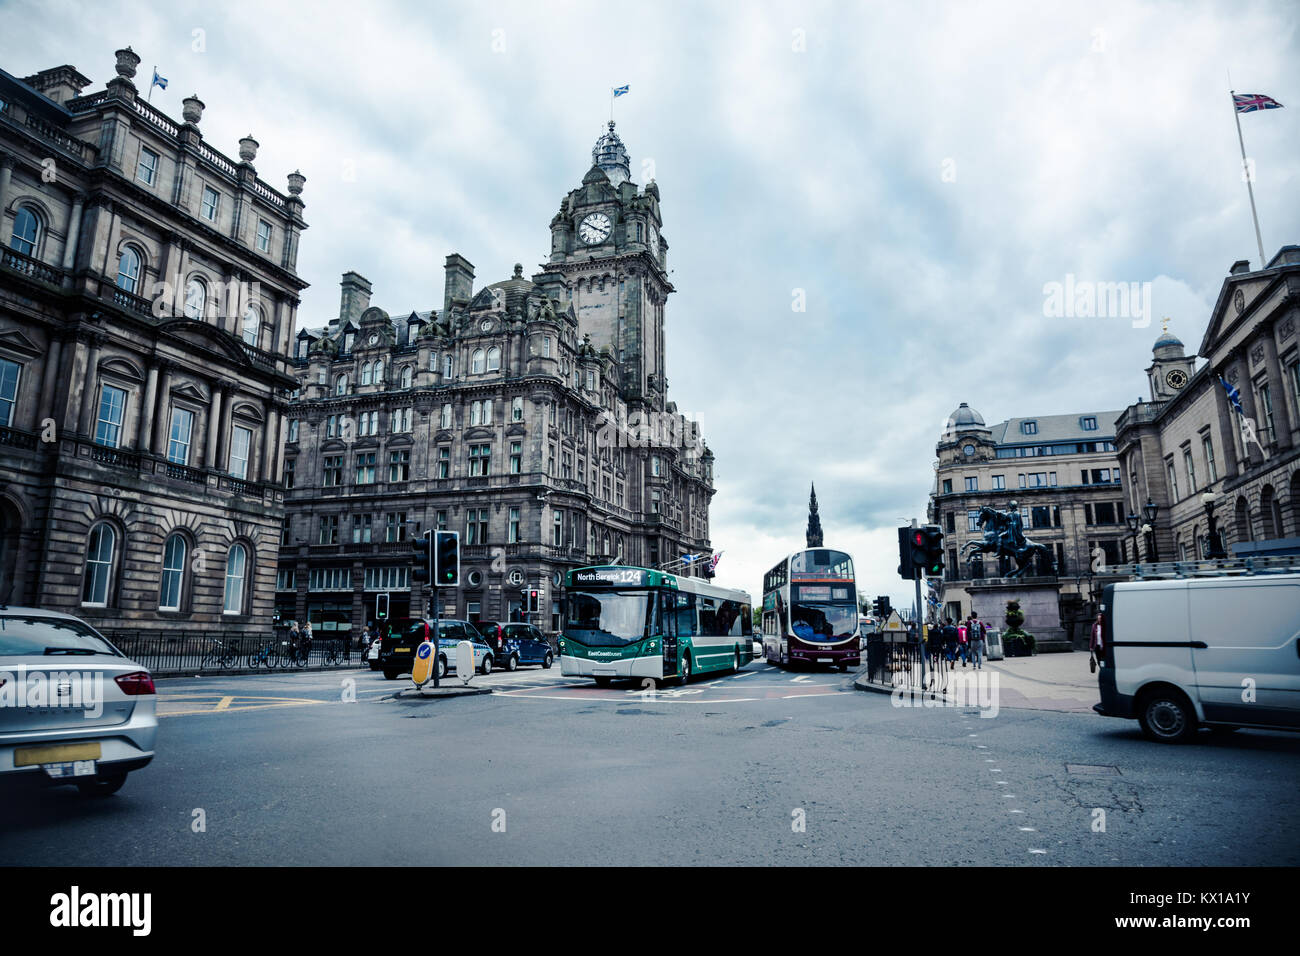 Everyday scene of a busy street in Edinburgh. - Stock Image